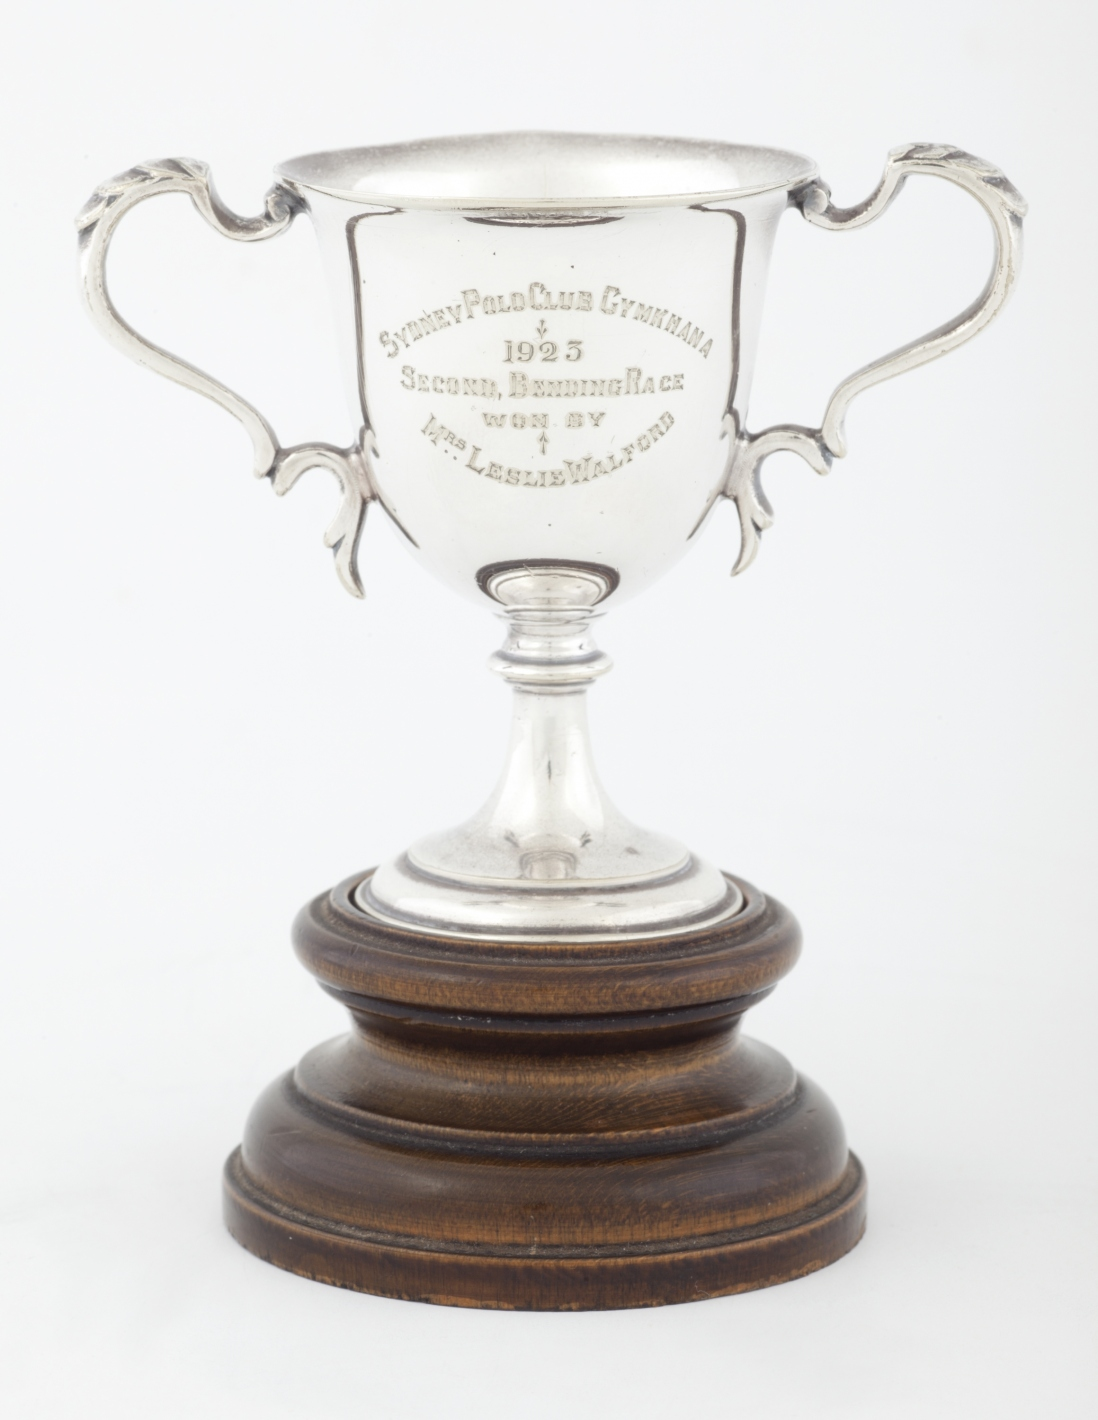 Trophy presented to Dora Walford